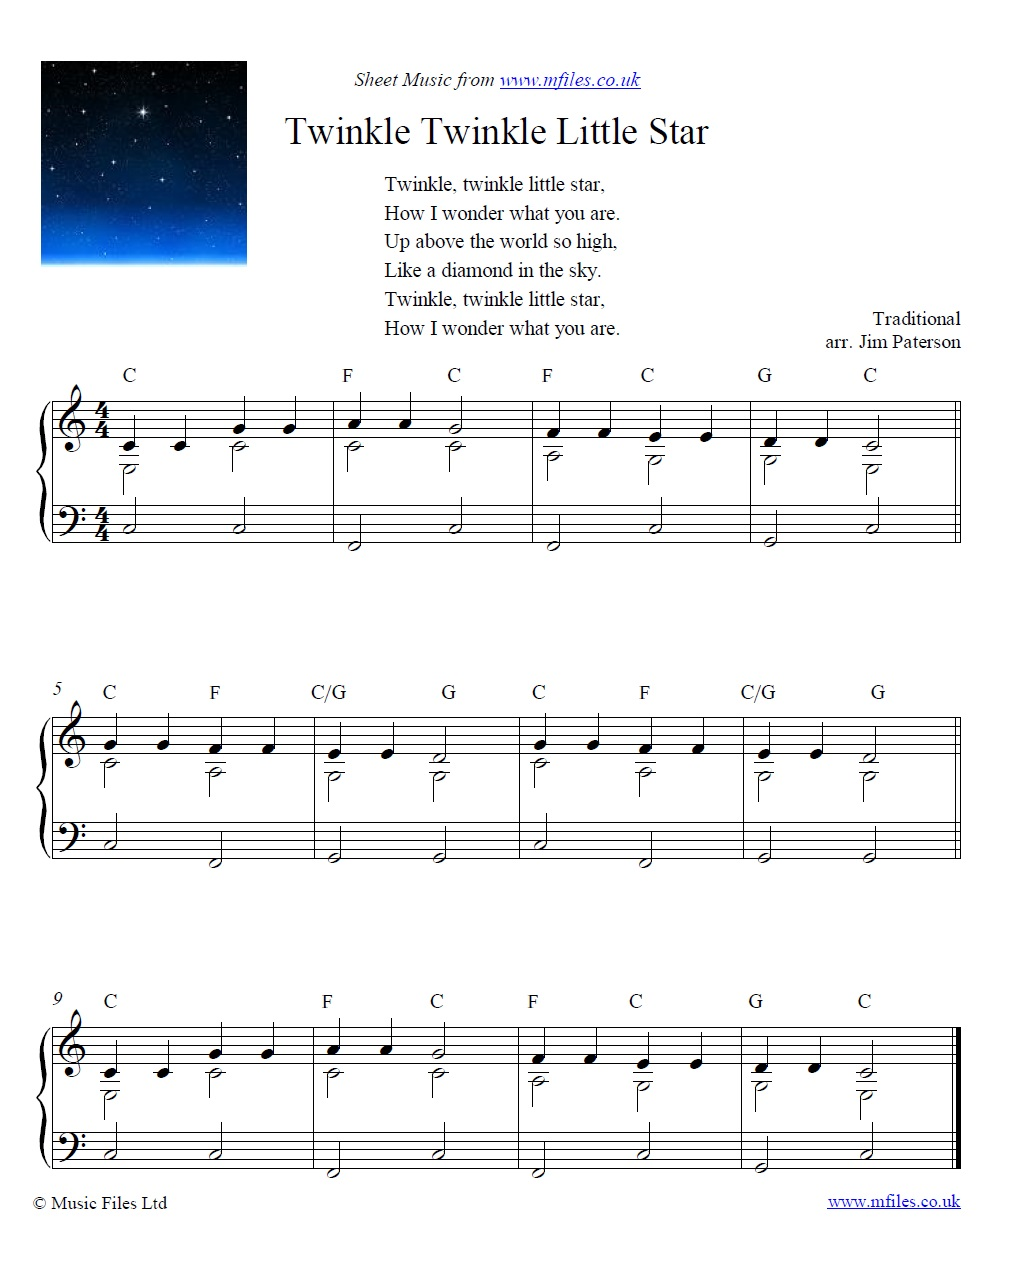 Twinkle twinkle little star sheet music pdf